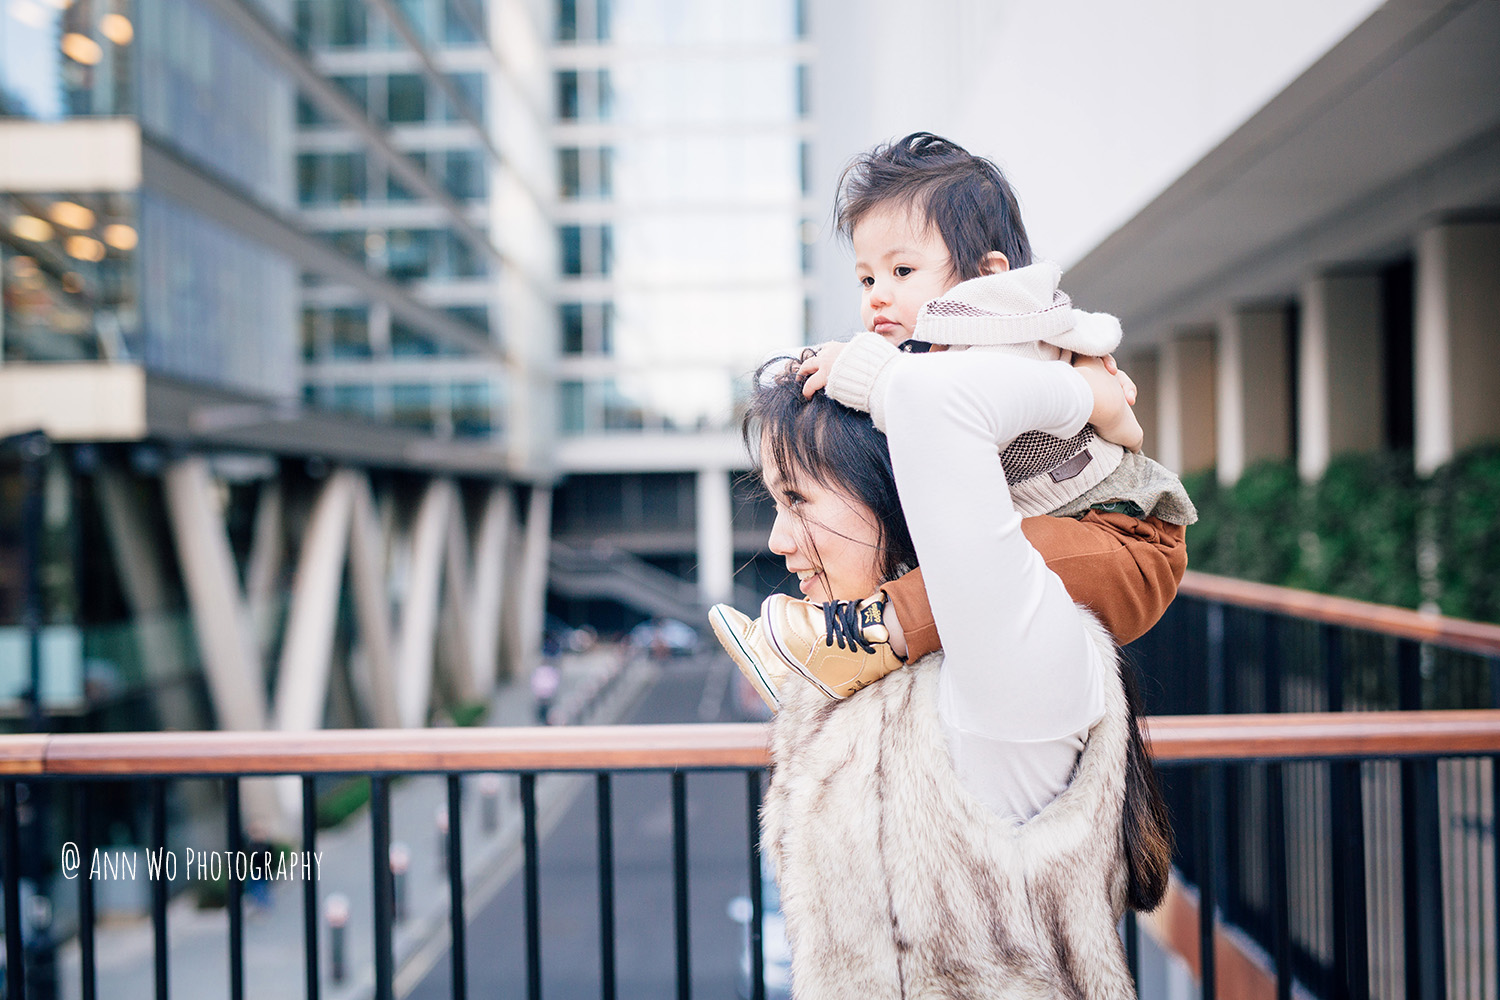 Lifestyle family photography in London - Ann Wo